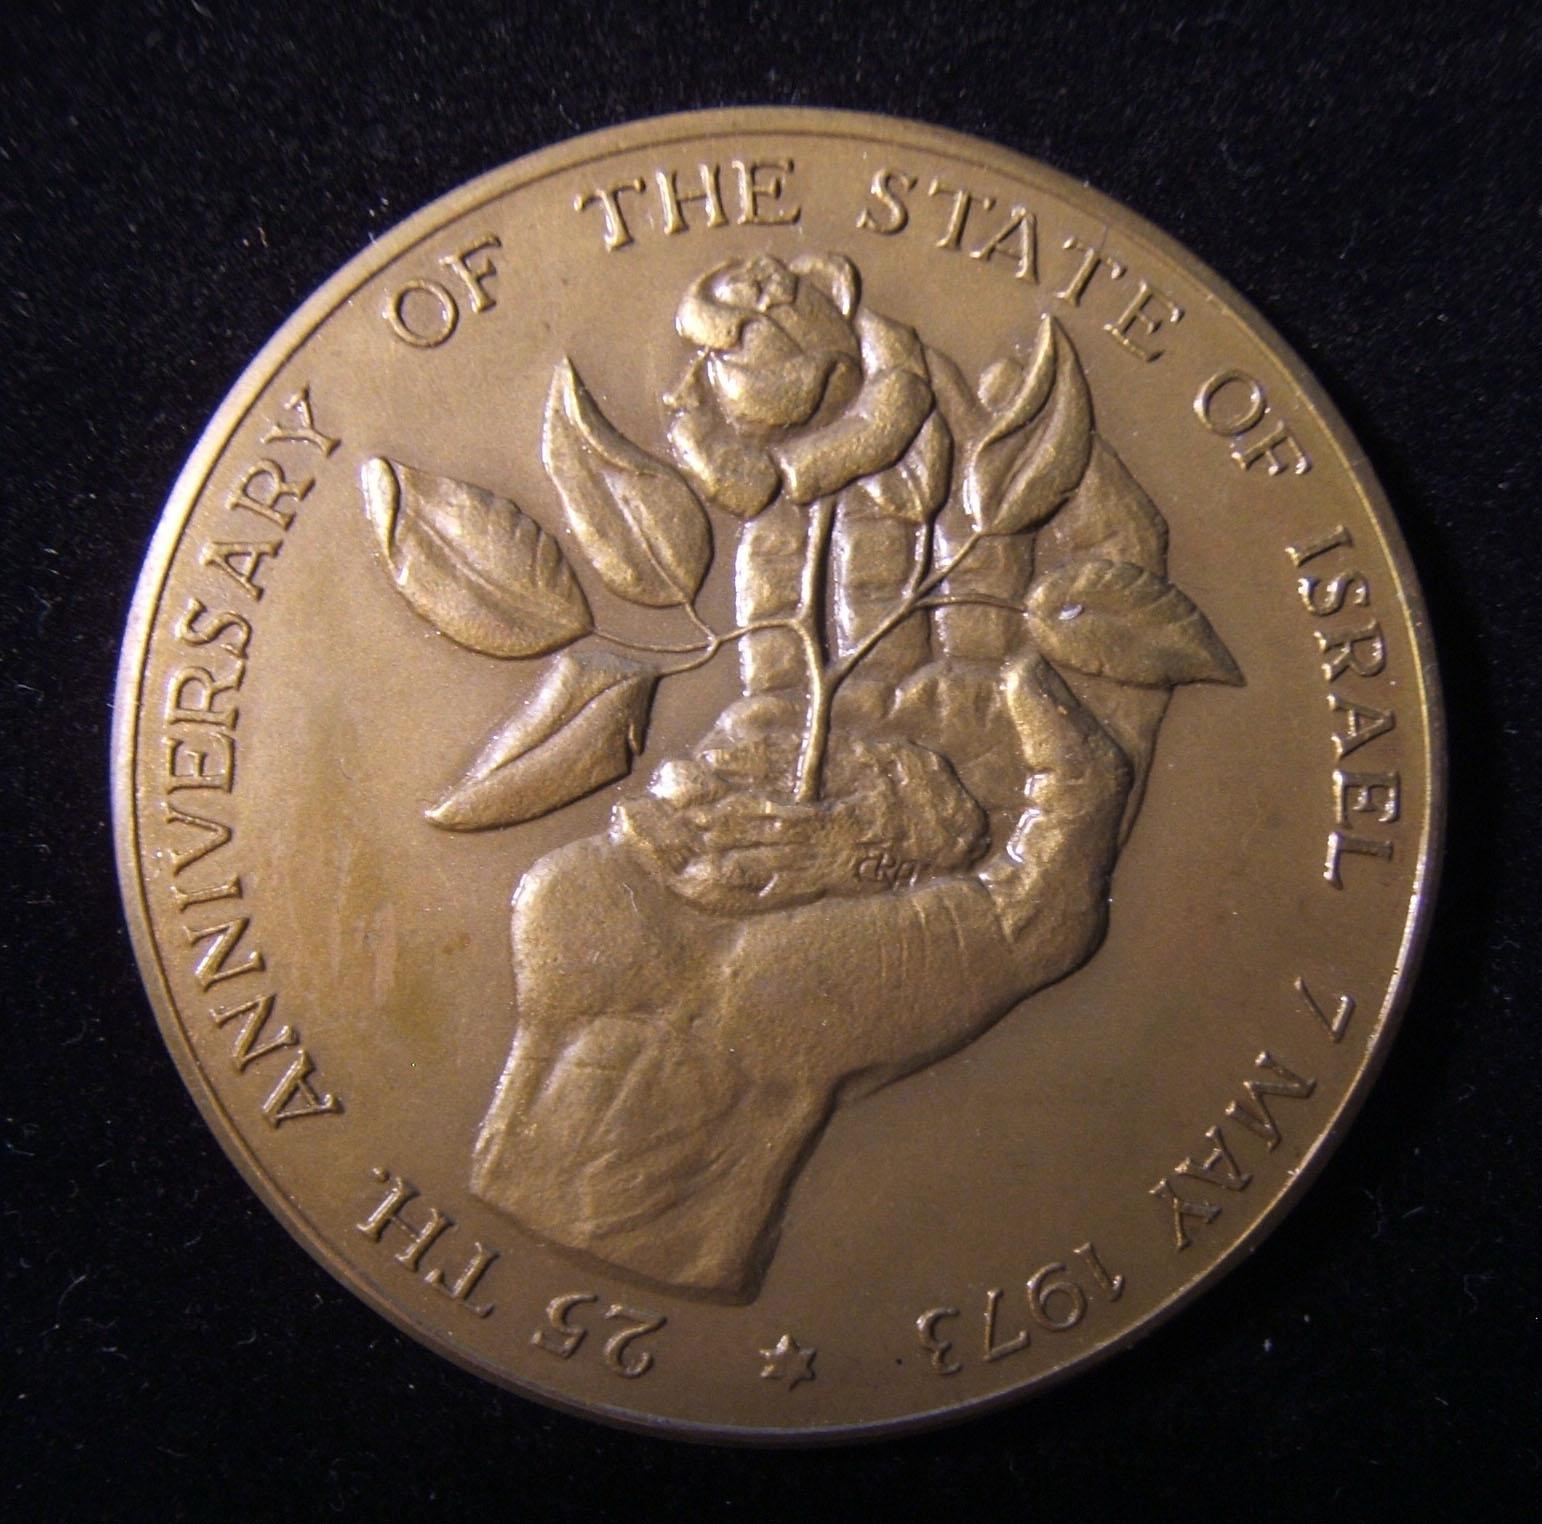 Israel: 25th Anniversary of Israel bronze medal by Rudi Augustinus (Rudolf Cornelis [Ruud] Augustinus), 1973; size: 50.5mm; weight: 47.9g. Obverse depicts raised hand with clump of